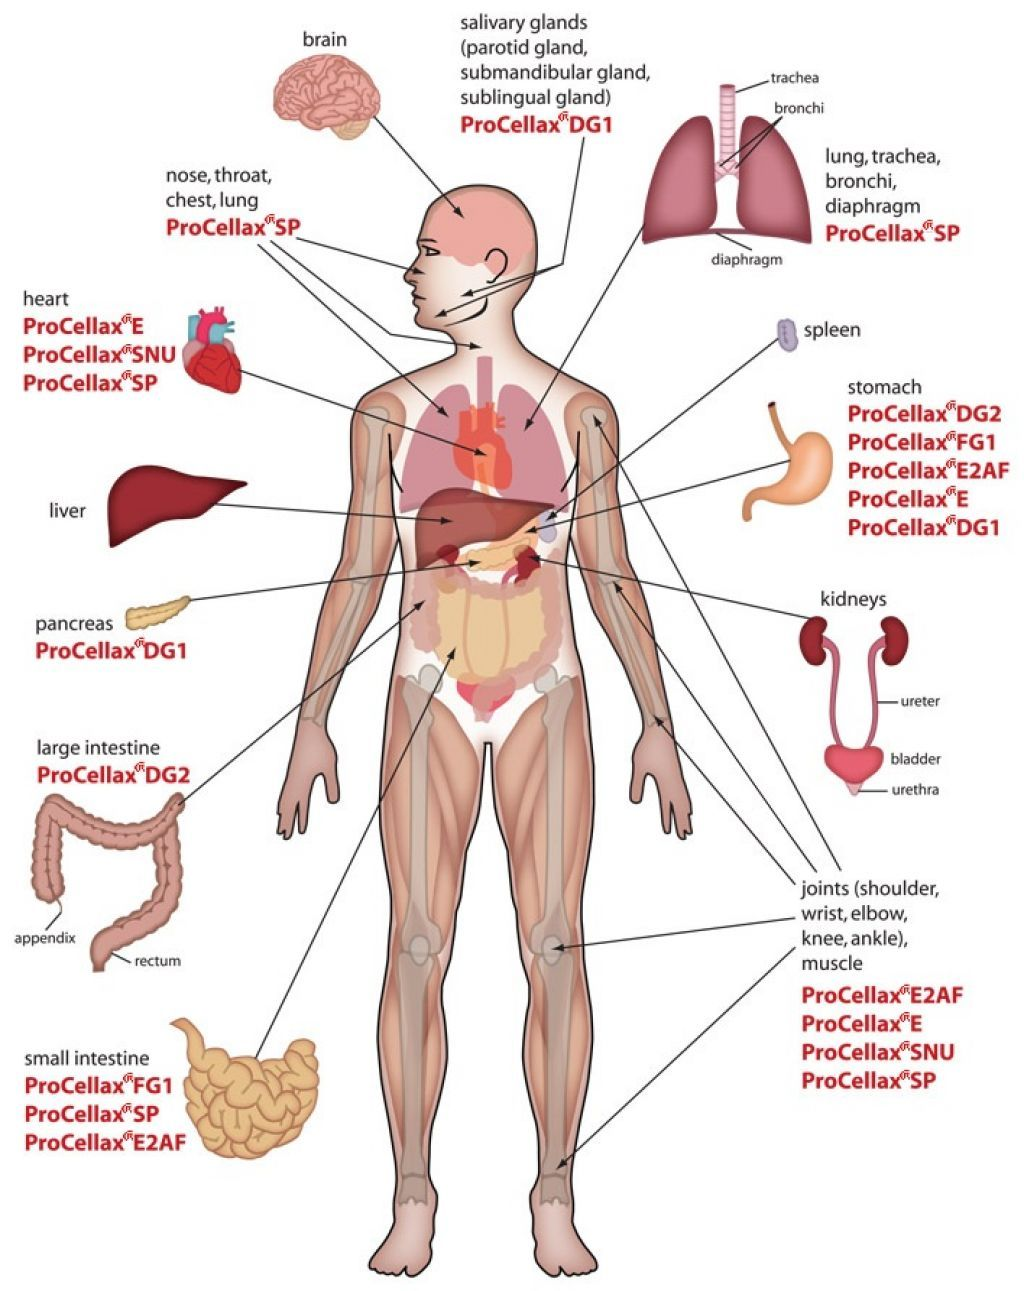 Human Body Anatomy Internal Organs Diagram | Stay Fit and Strong ...